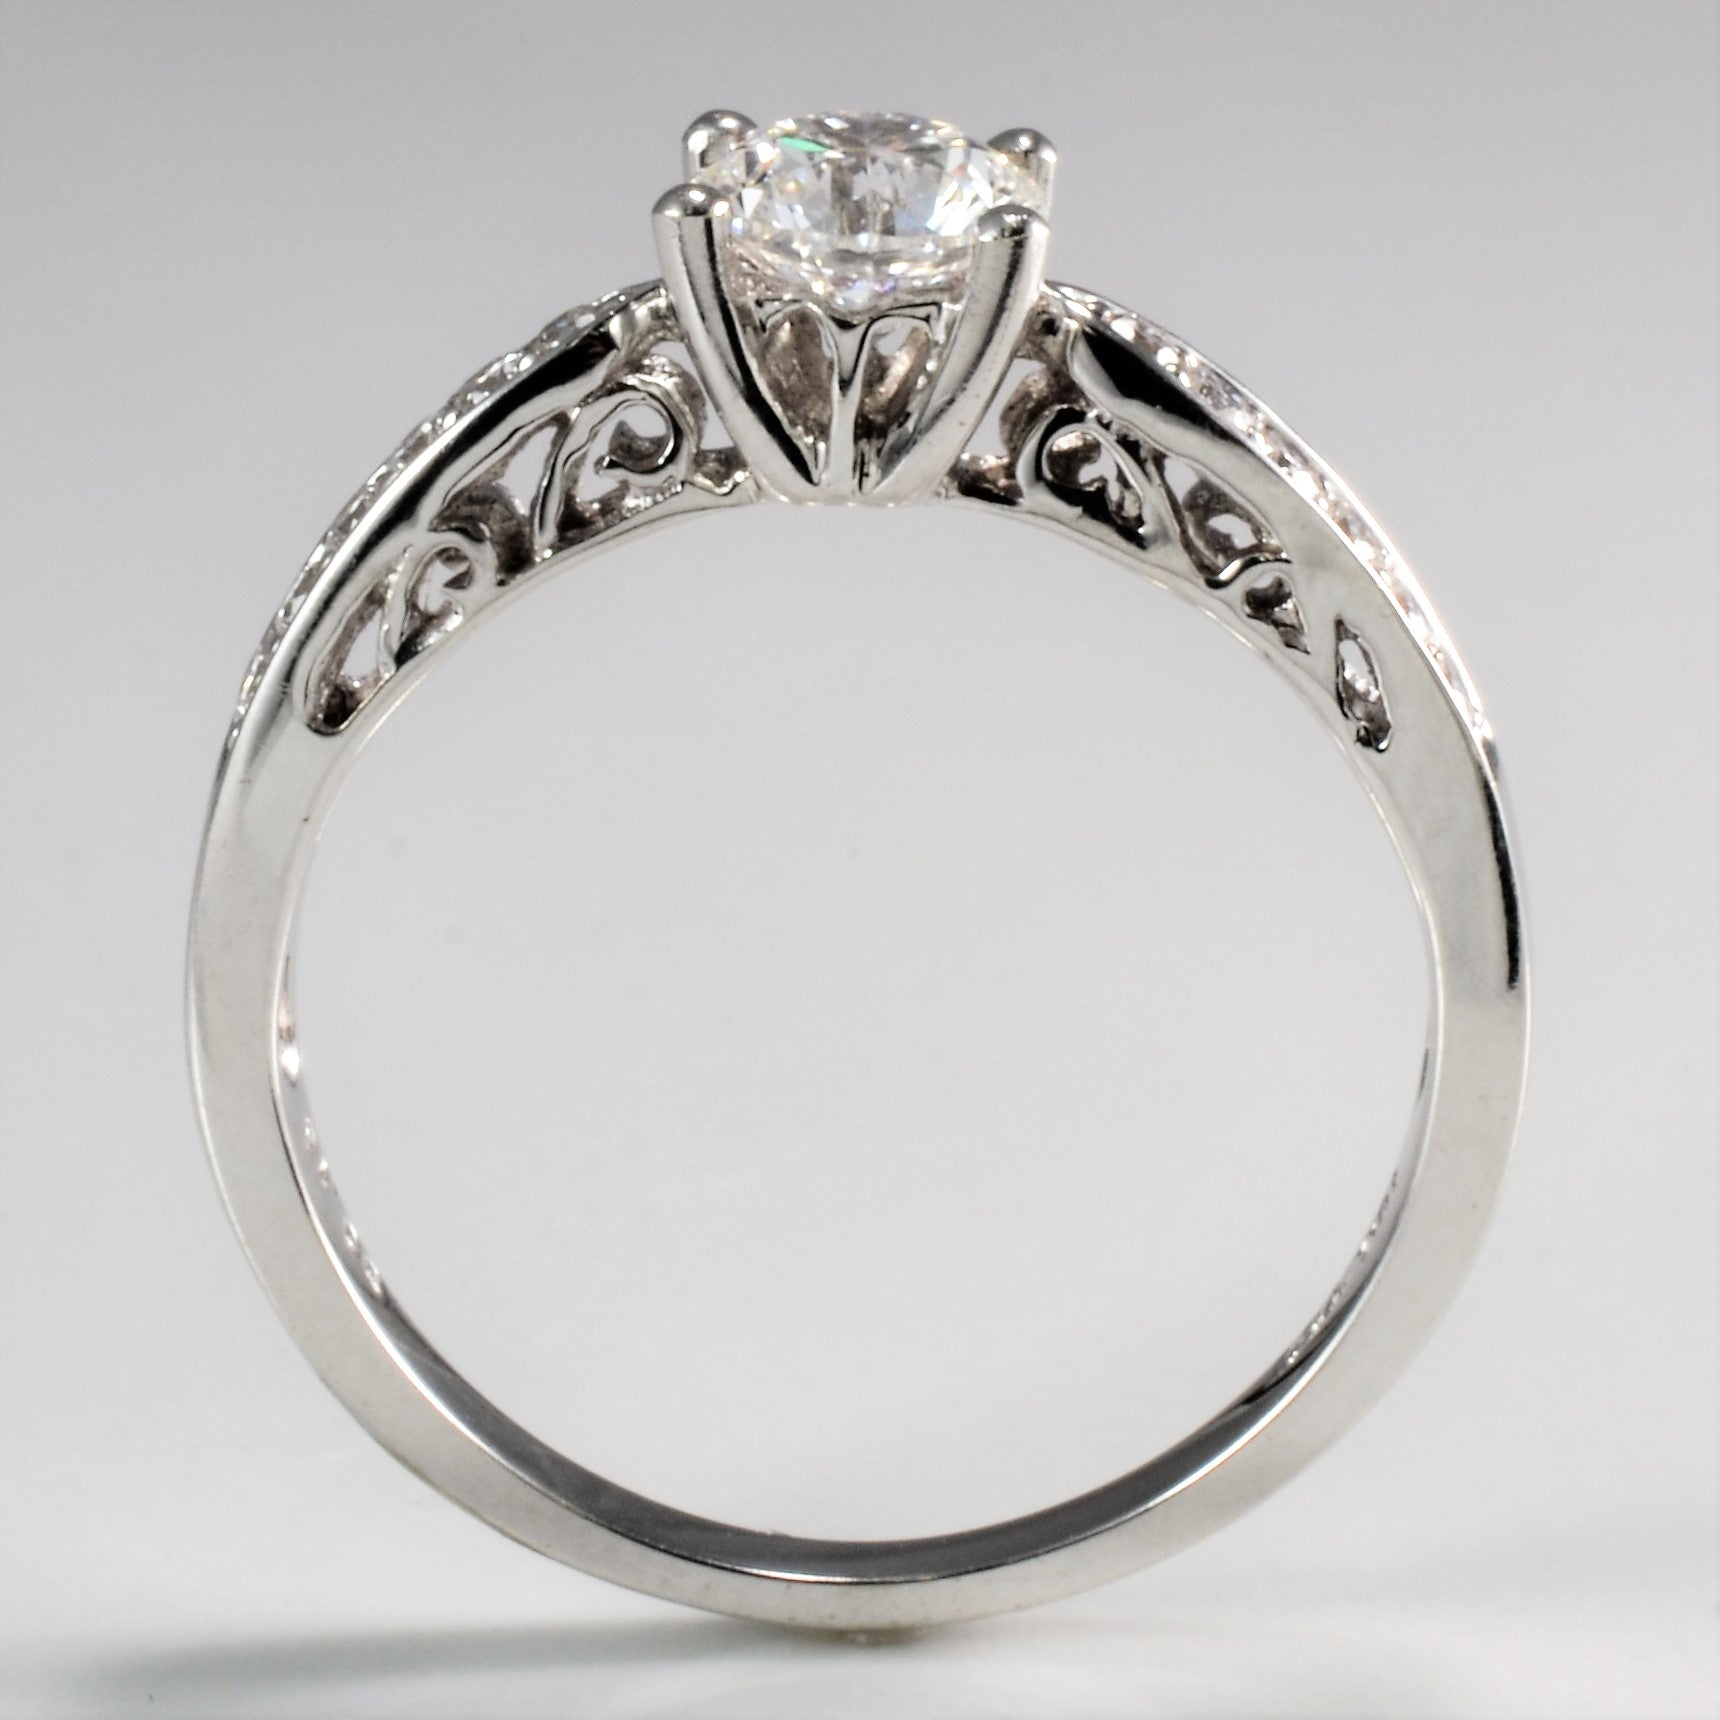 Delicate Filigree Detailed Diamond Ring | 0.73 ctw, SZ 7 |